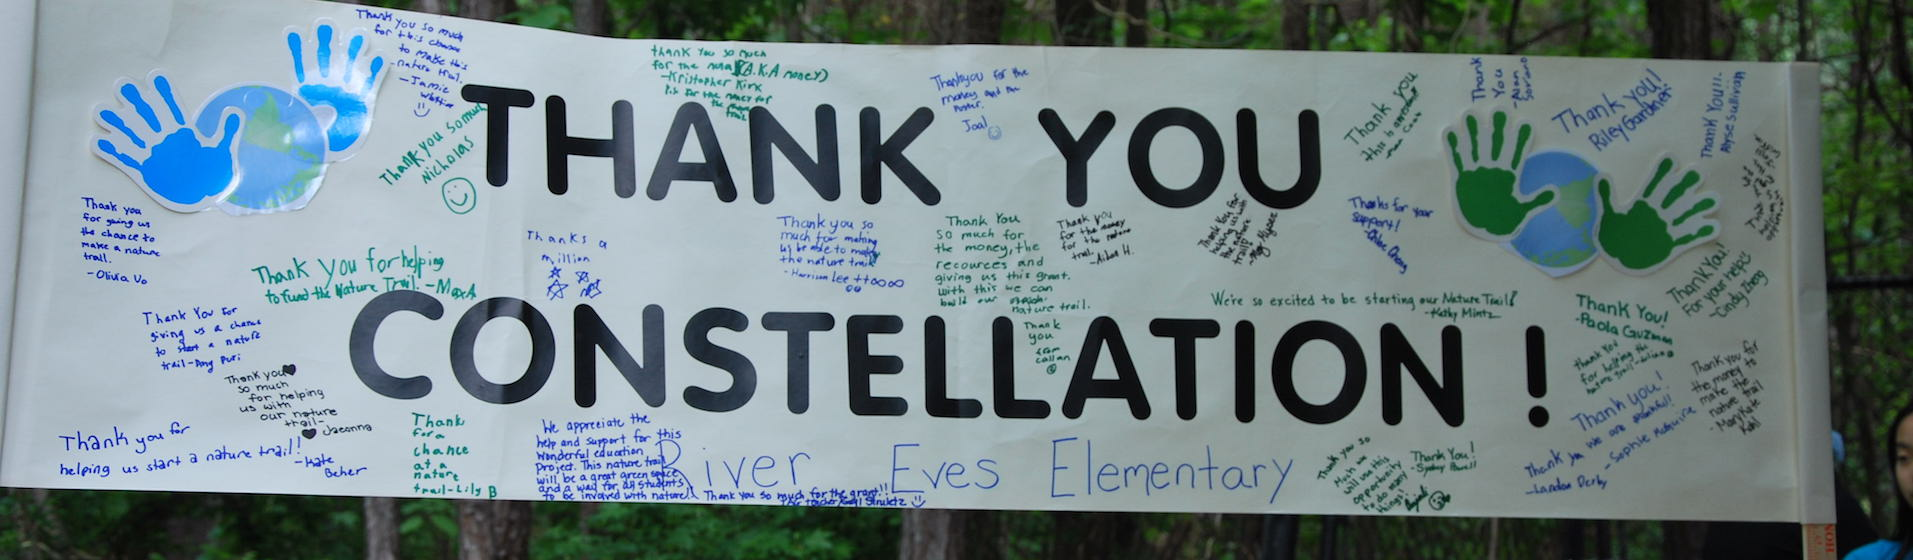 Banner saying Thank You Constellation for community giving